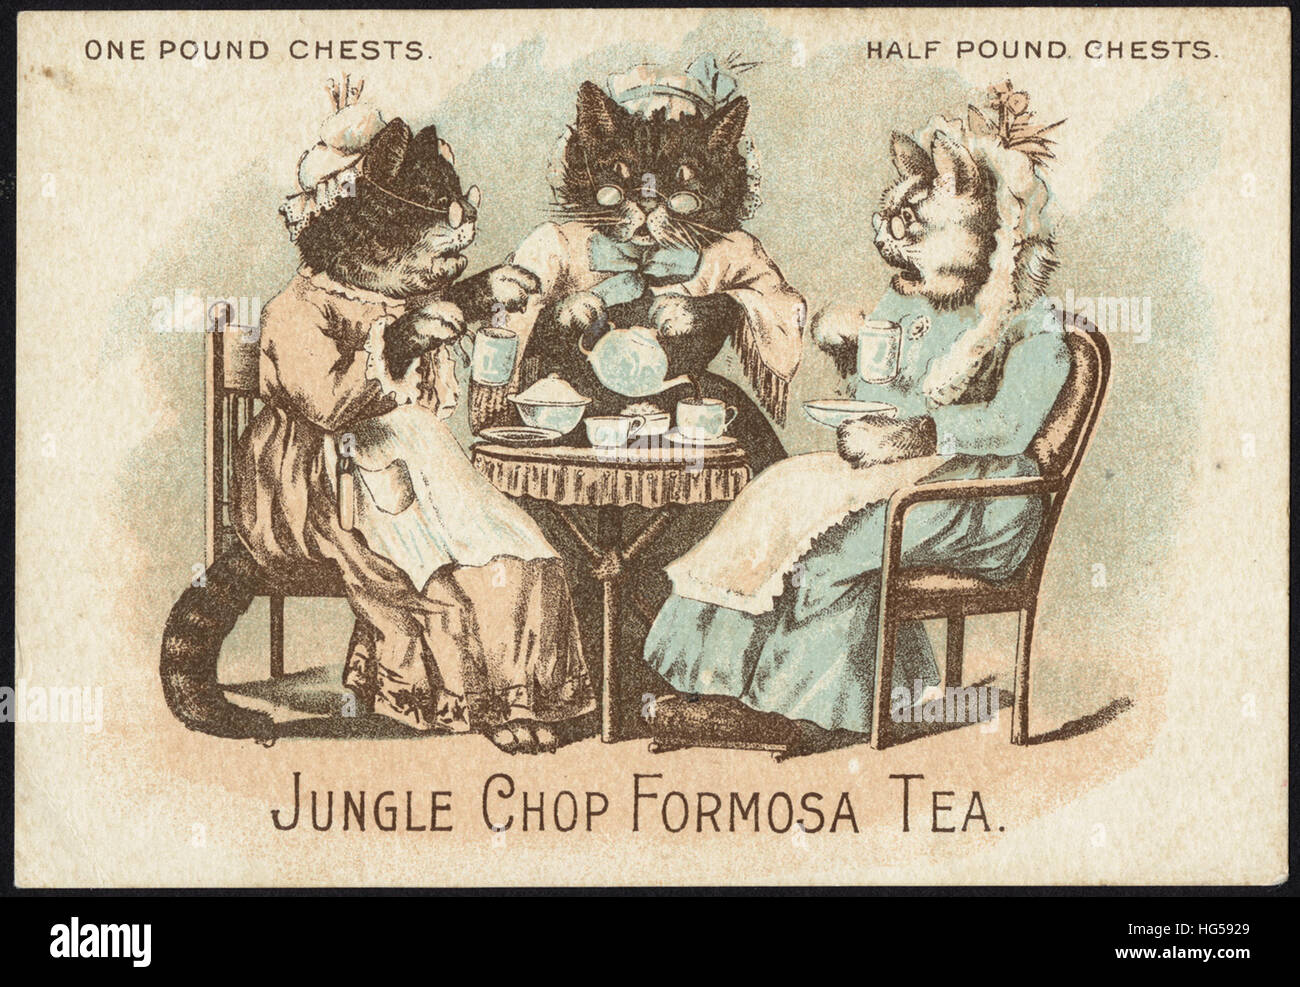 Beverage Trade Cards -  One pound chests. Half pound chests. Jungle Chop Formosa tea. - Stock Image